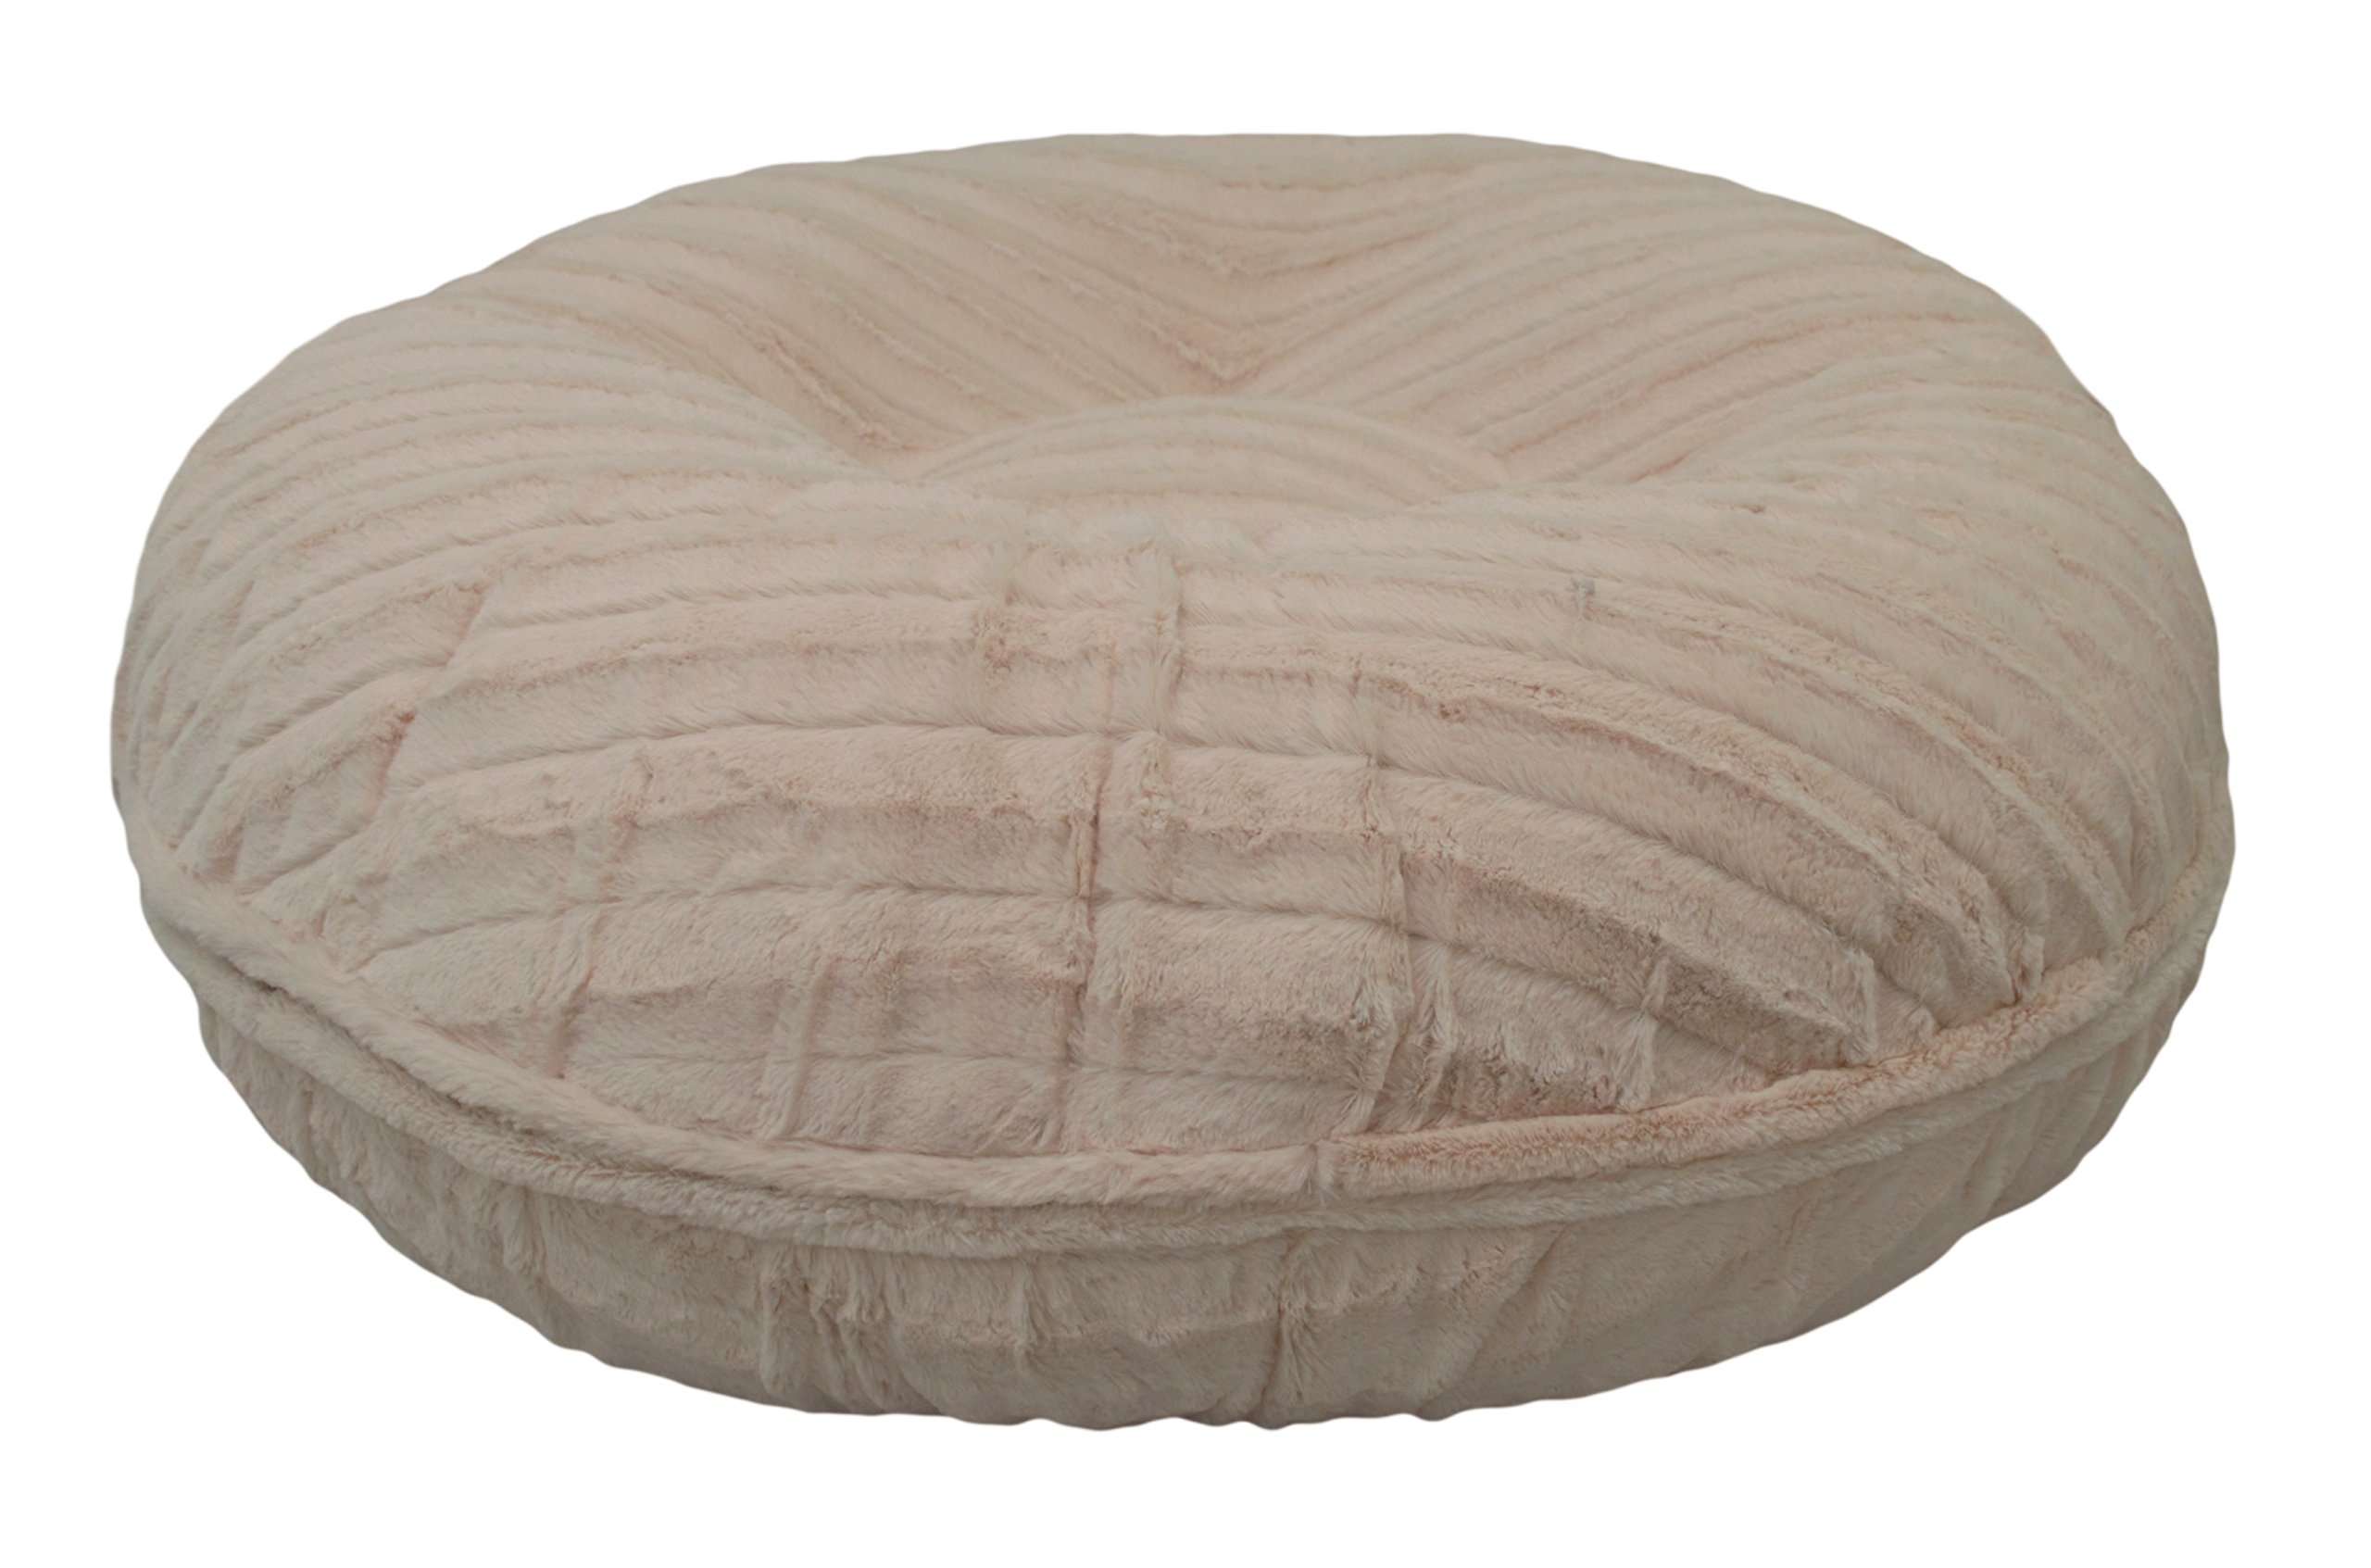 BESSIE AND BARNIE 30-Inch Bagel Bed for Pets, Small, Natural Beauty